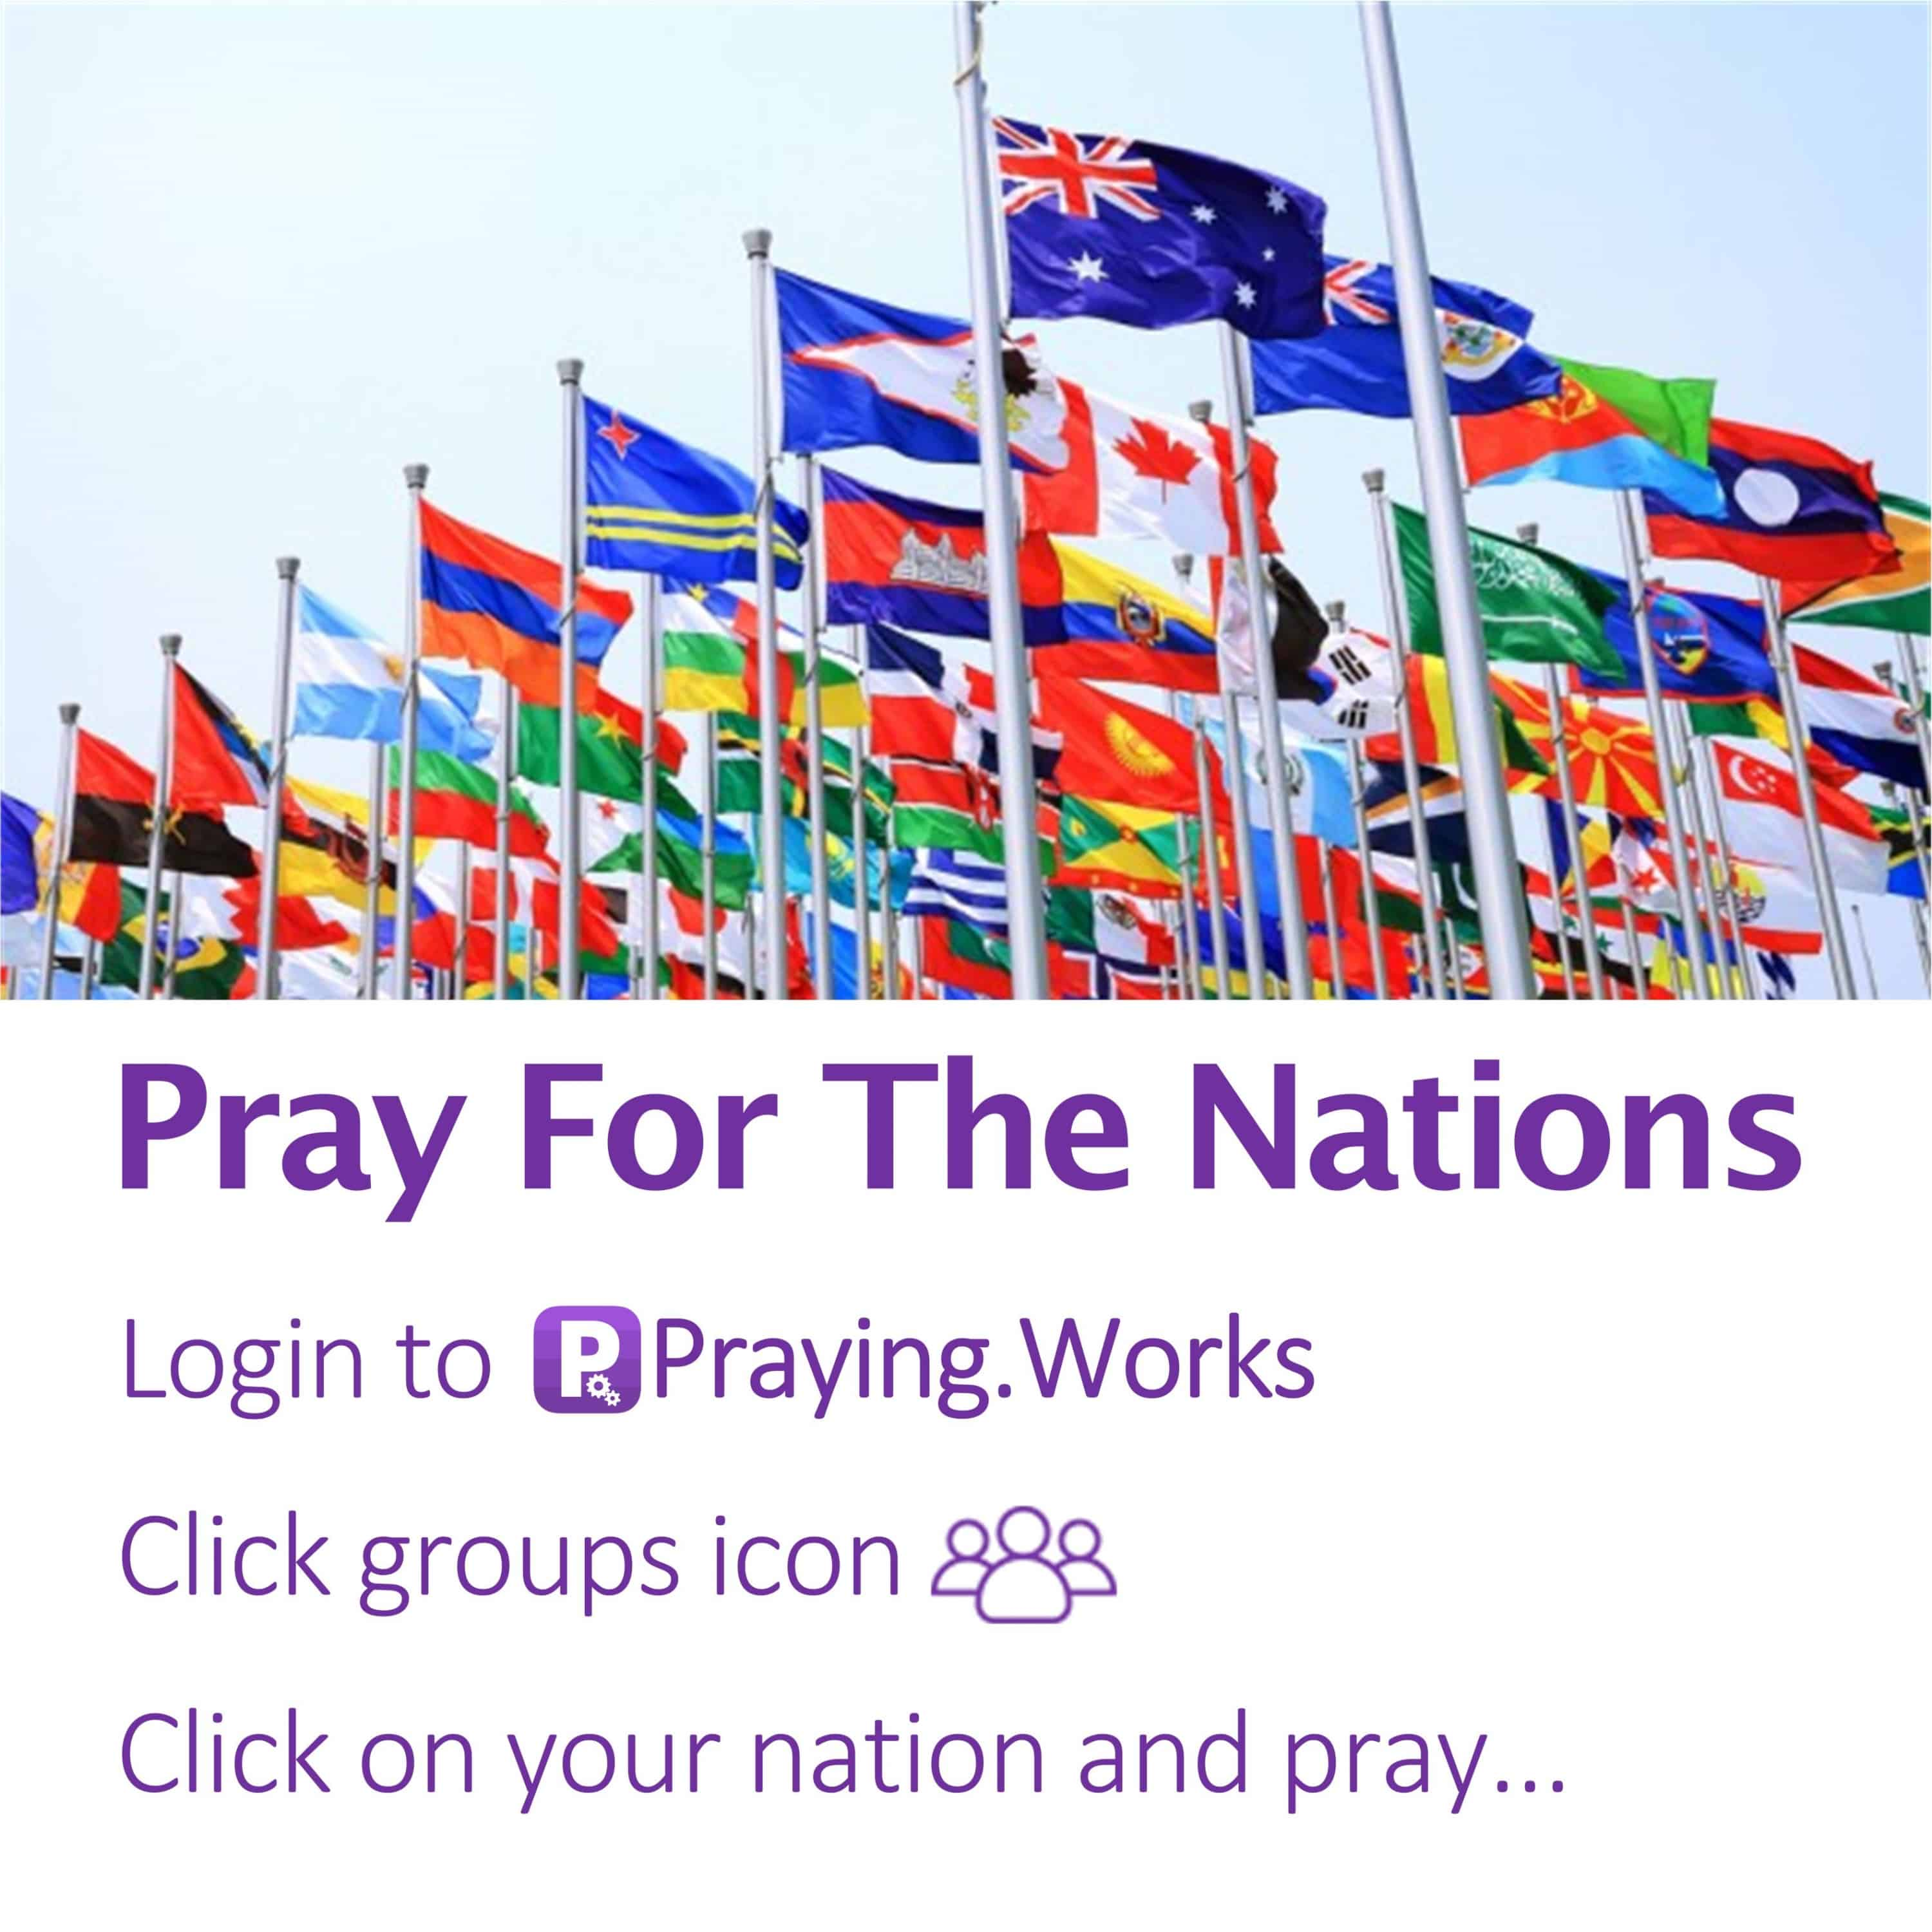 Pray for the Nations 1/7